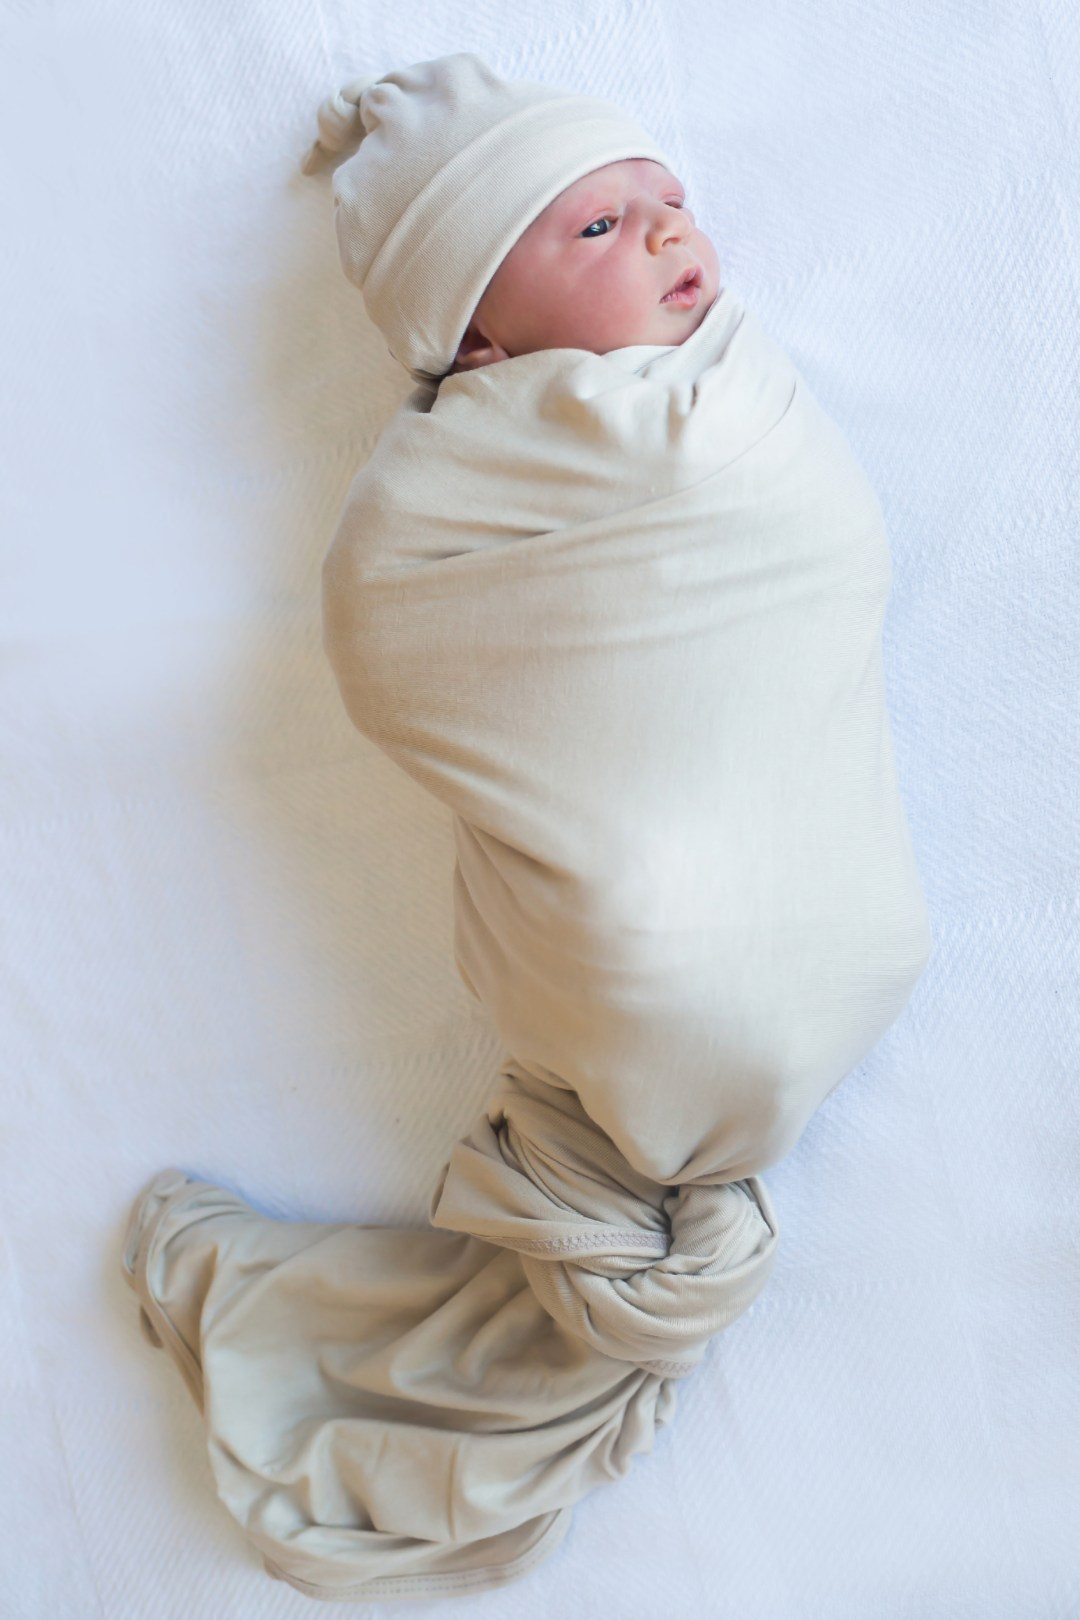 Lou Lou and Company swaddle blanket, newborn photography tips, South Florida lifestyle blog Sunflowers and Stilettos